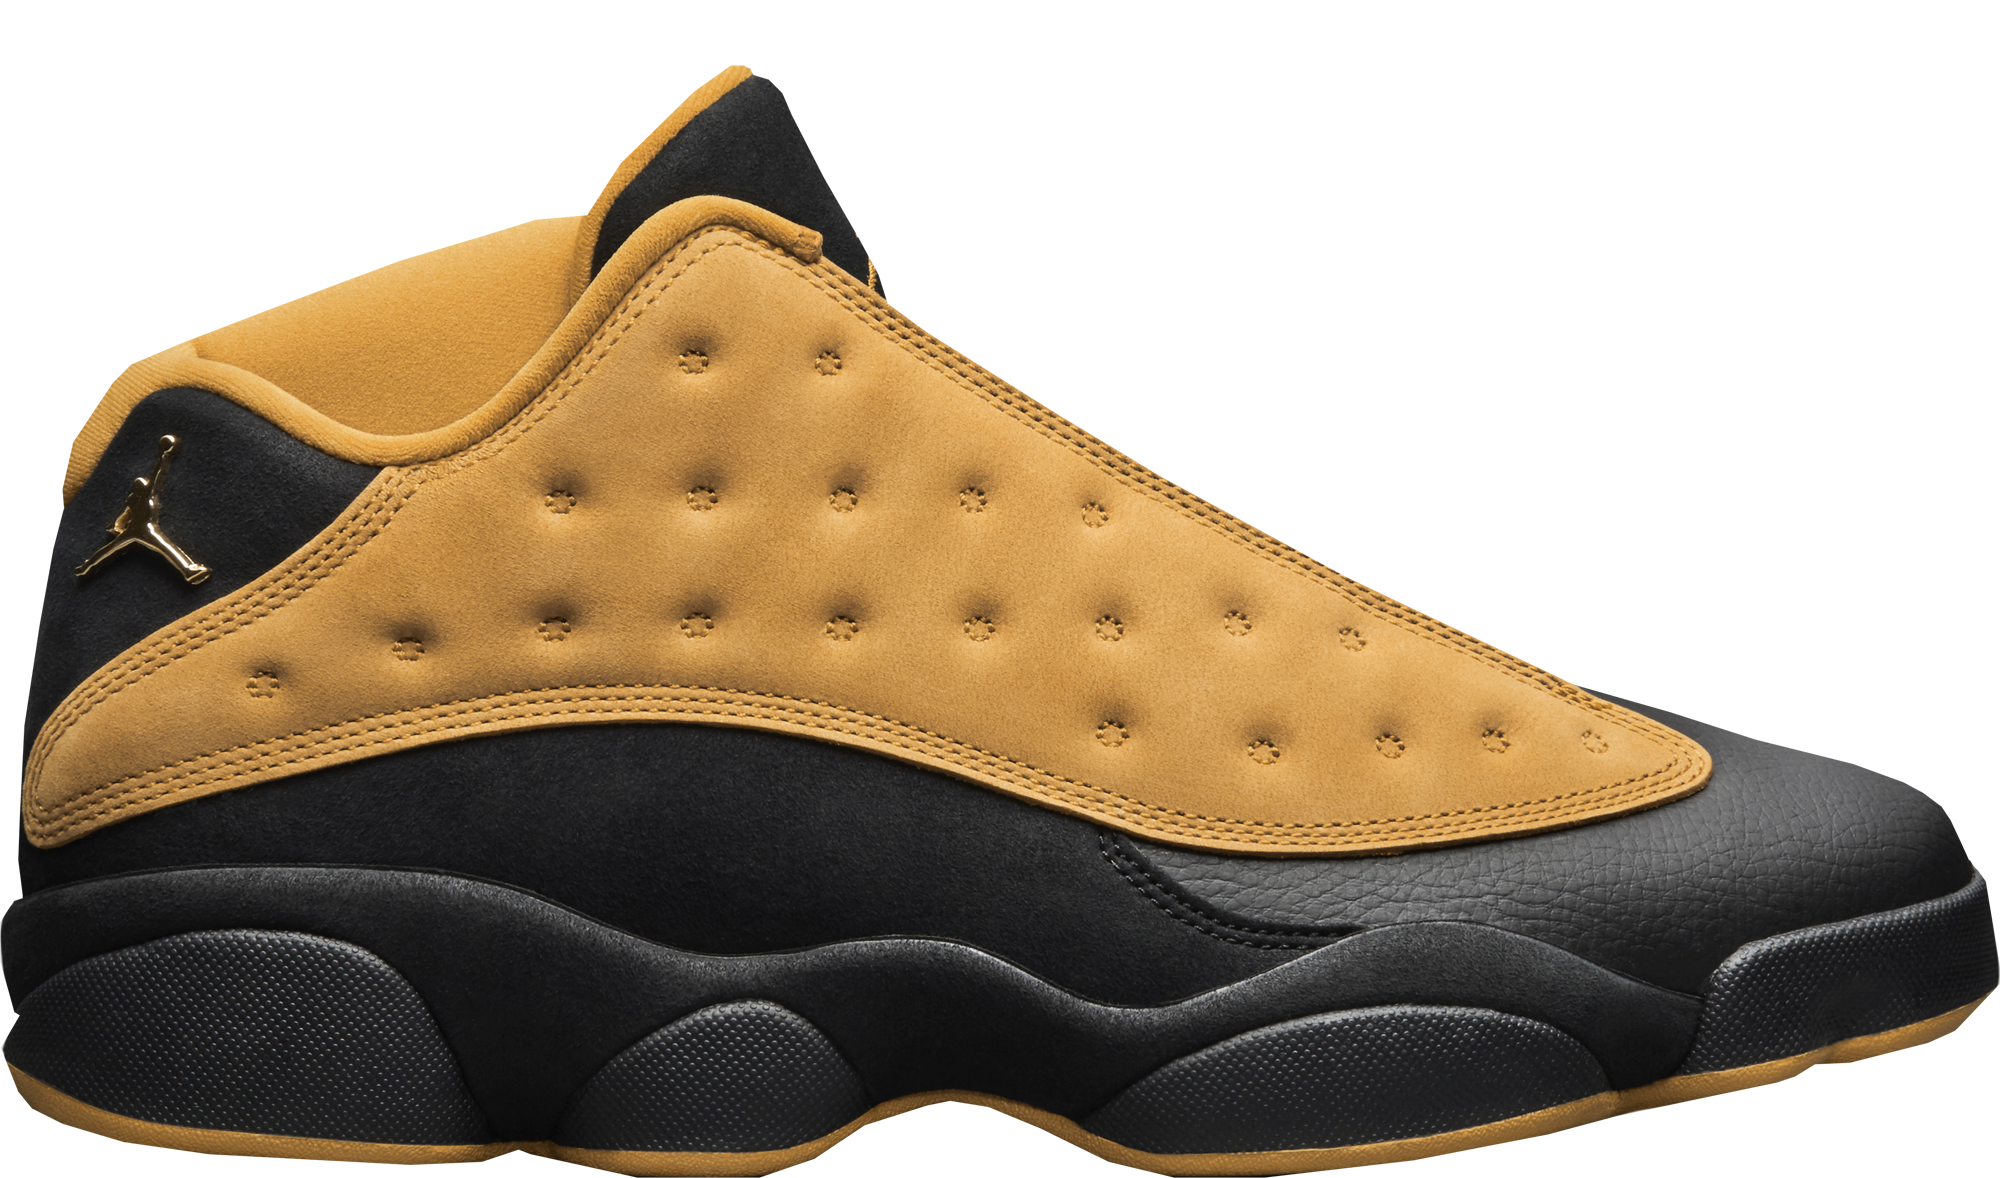 Jordan 13 Retro Low Chutney